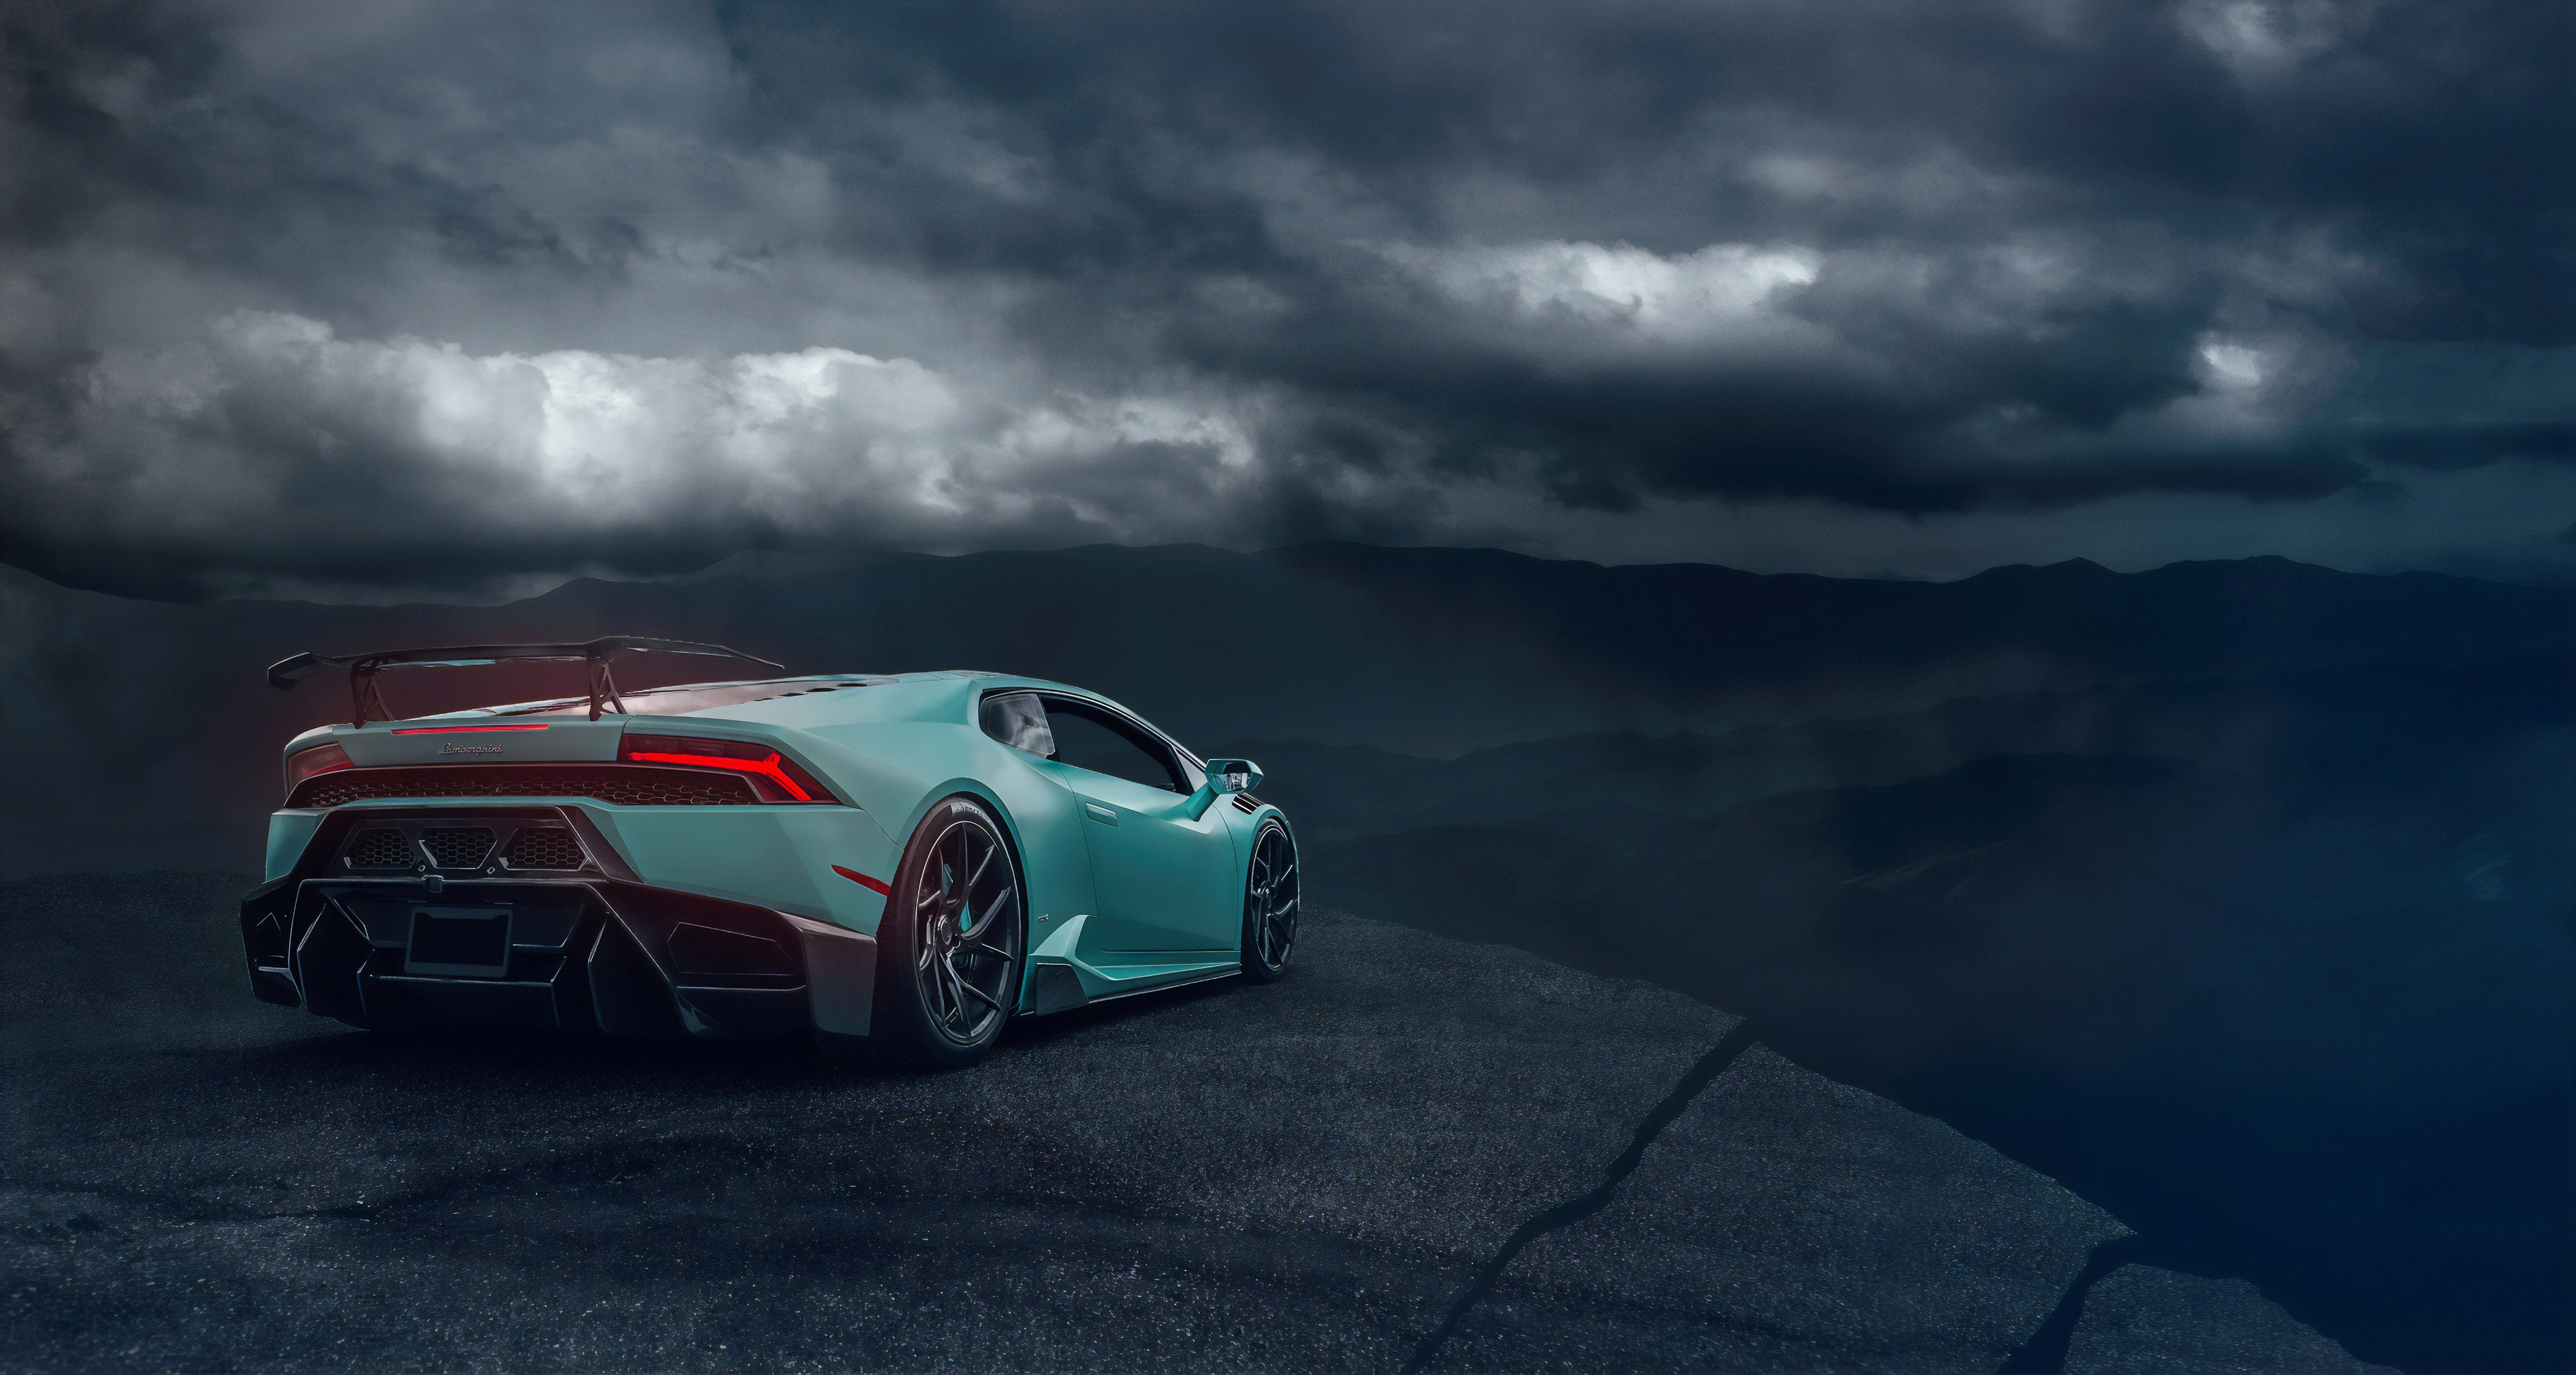 1366x768 Lamborghini Aventador Sky Blue 1366x768 Resolution Hd 4k Wallpapers Images Backgrounds Photos And Pictures